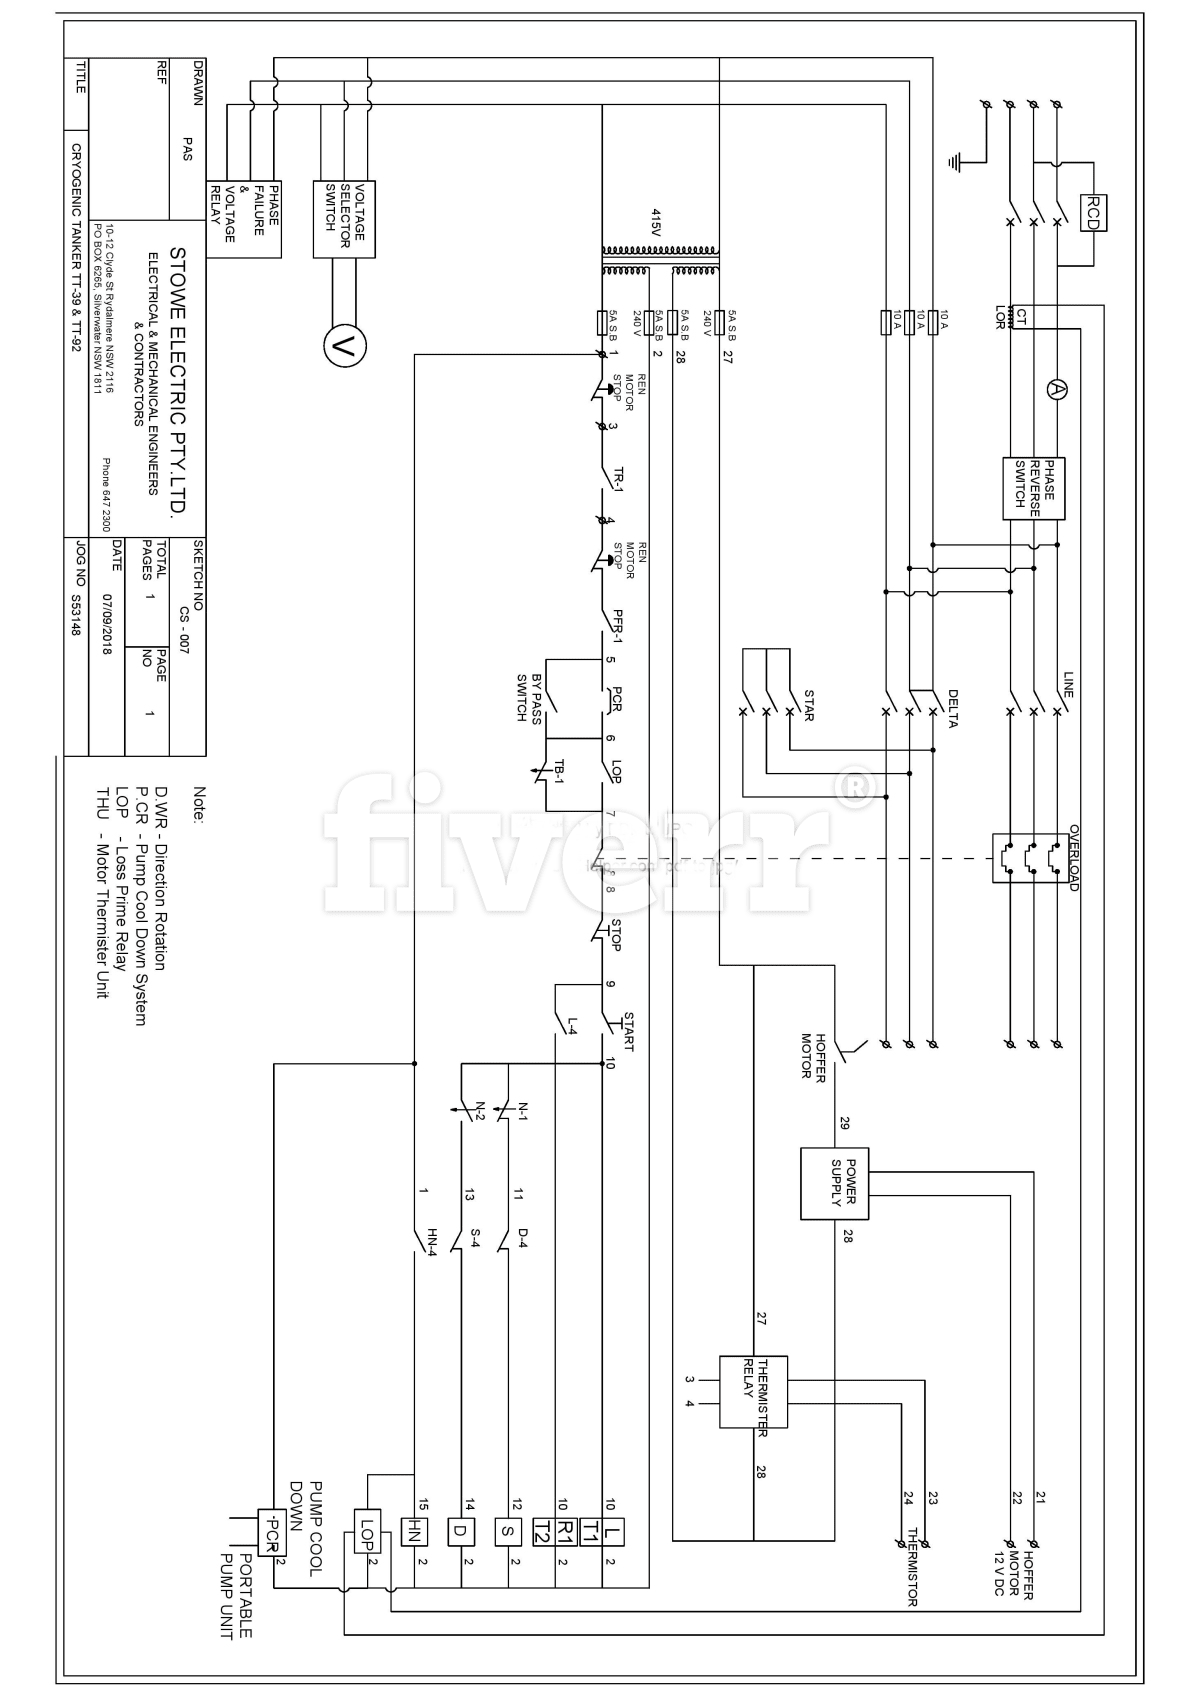 Electrical Design Shop Drawings Architectural In Autocad By Pasan8907 Drawing Using Cad